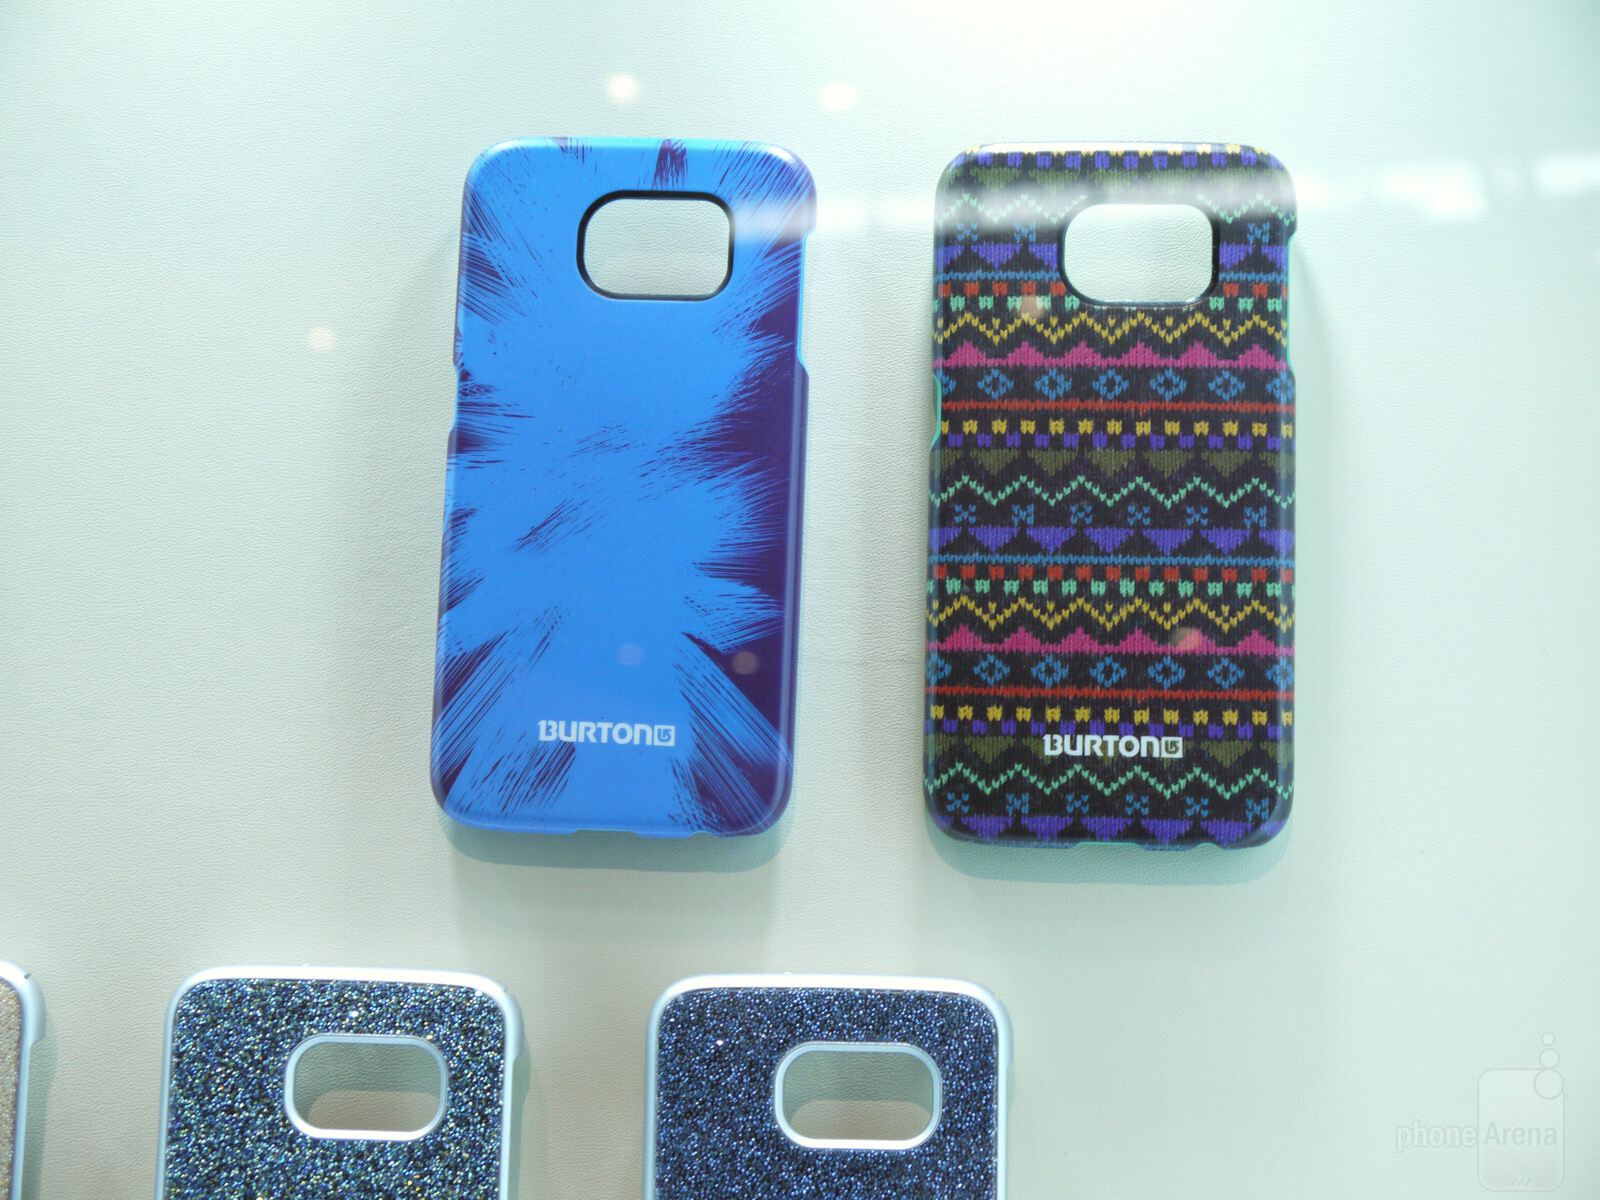 Samsung Galaxy S6 and Galaxy S6 edge cases are displayed at MWC2015